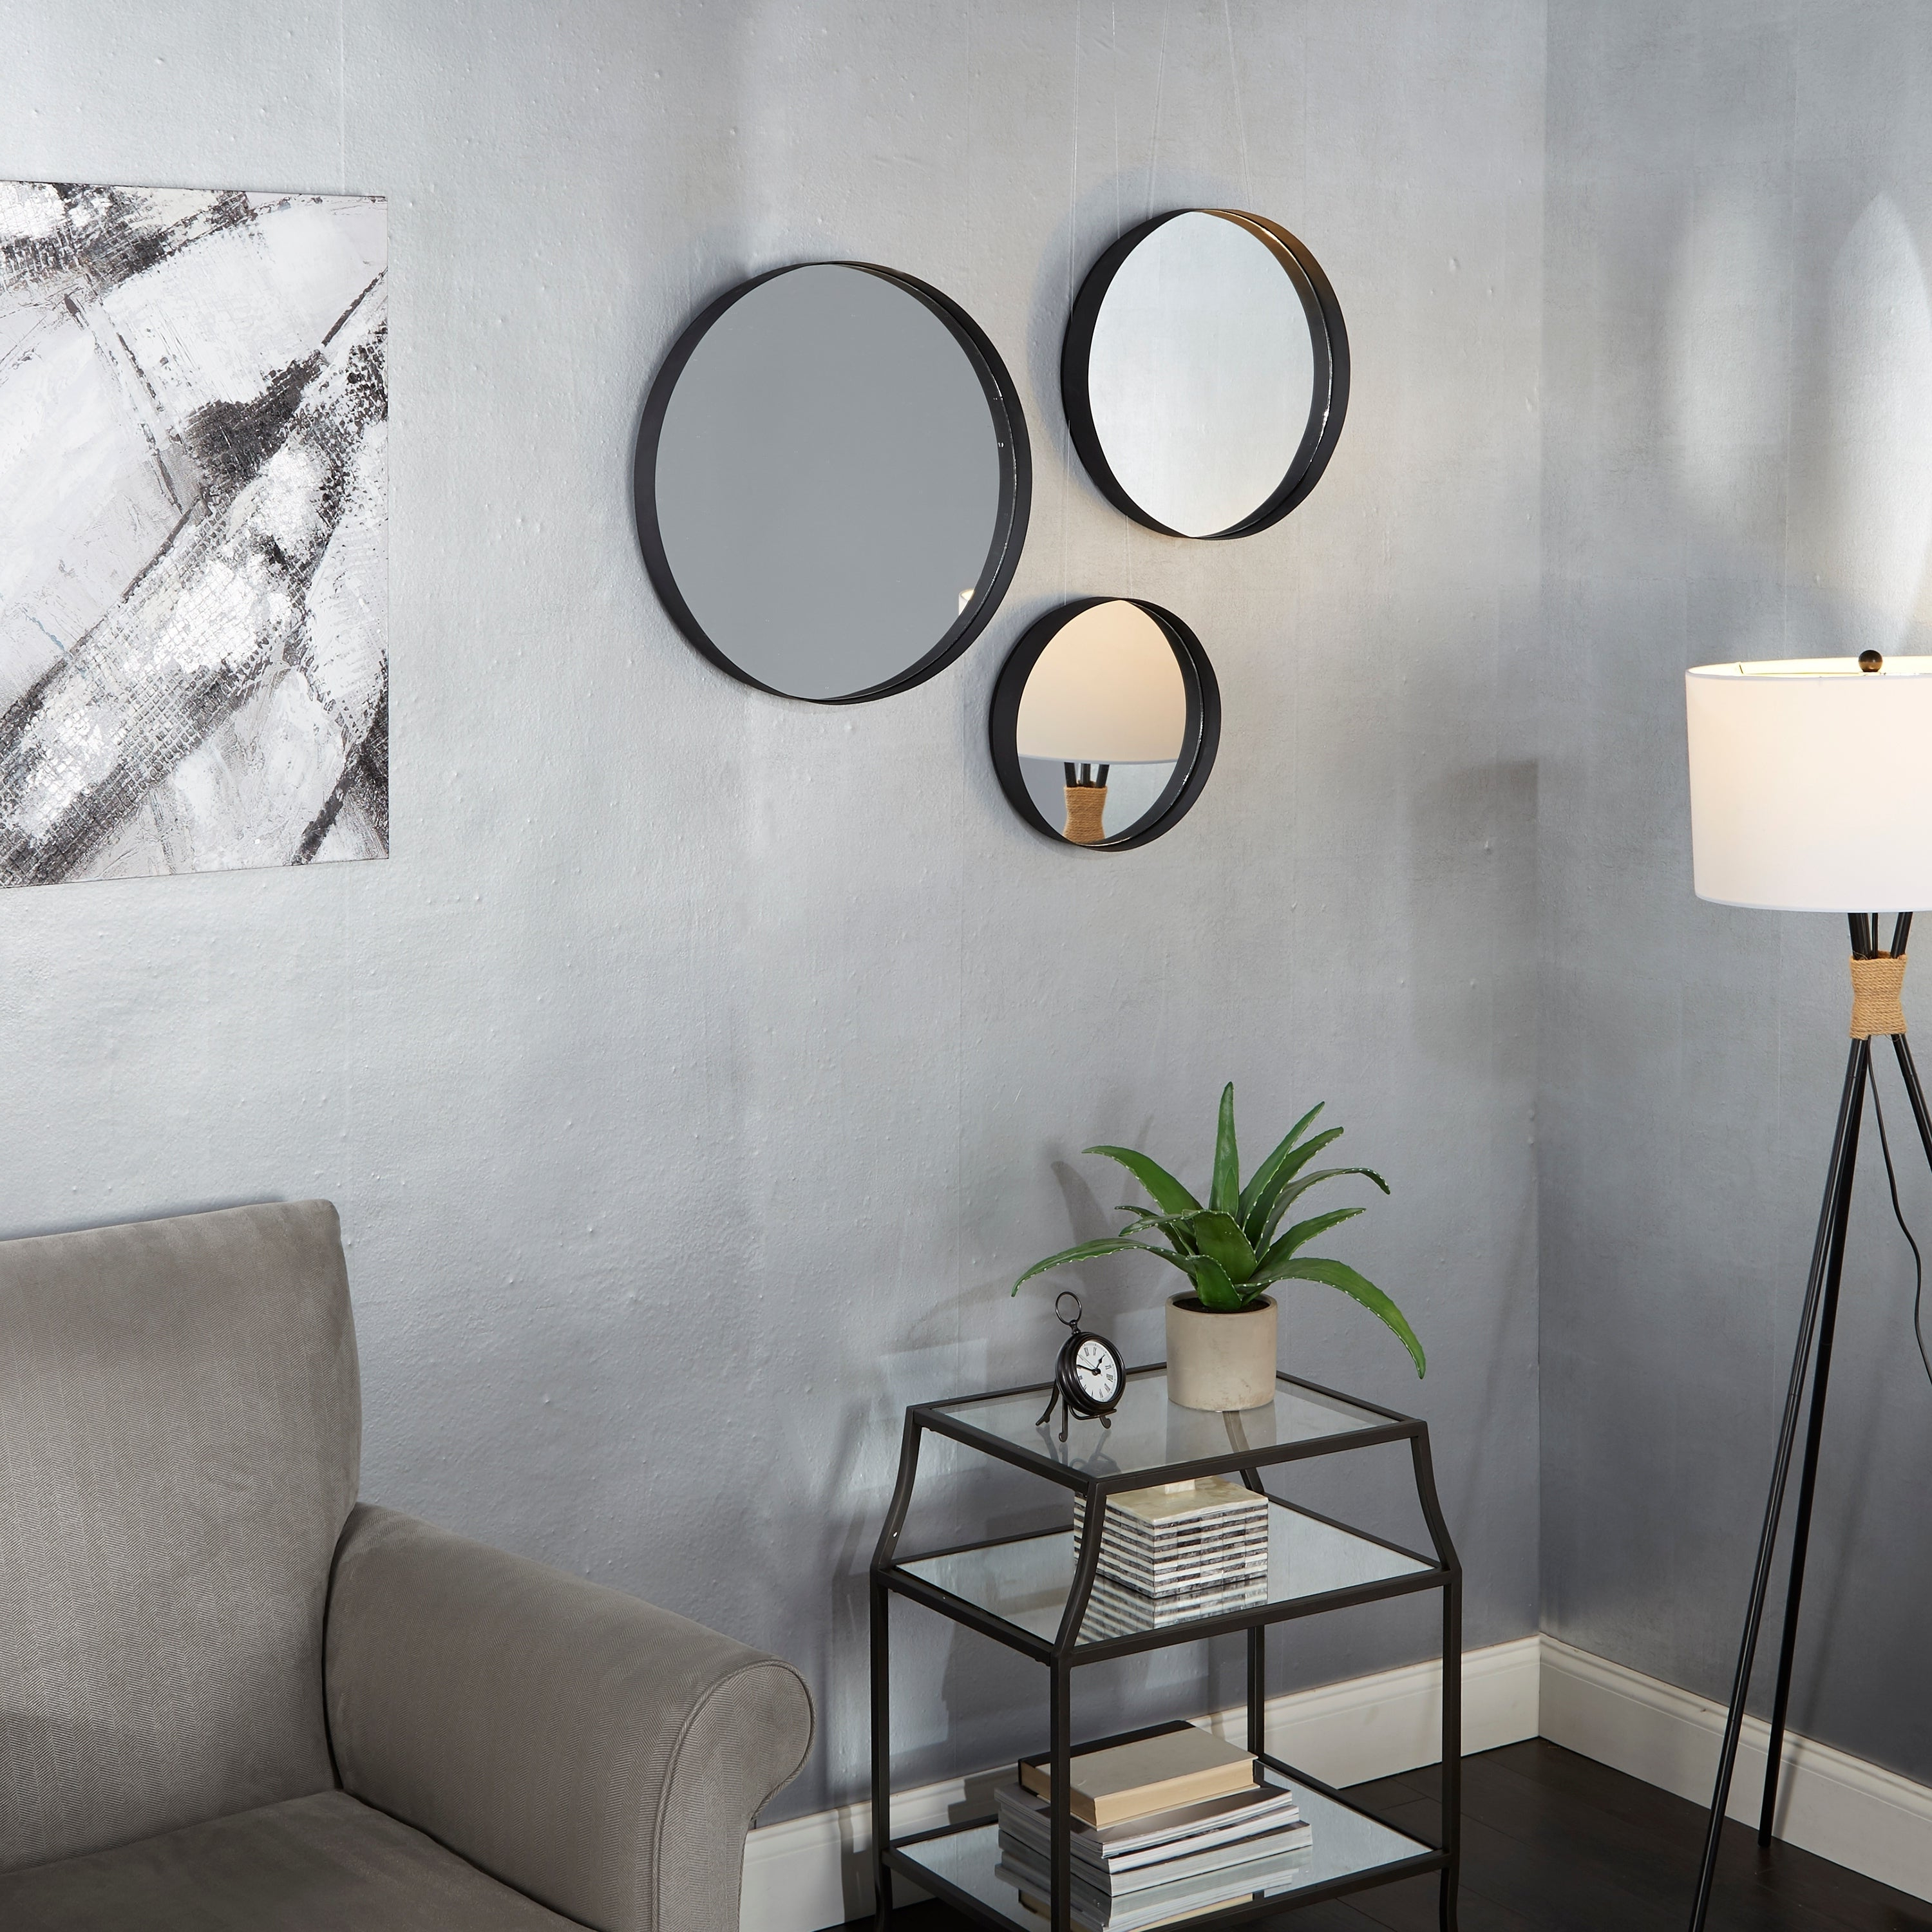 Most Recent Set Of 3 Paxton Round Wall Mirrors – Gunmetal Within Set Of 3 Wall Mirrors (Gallery 11 of 20)